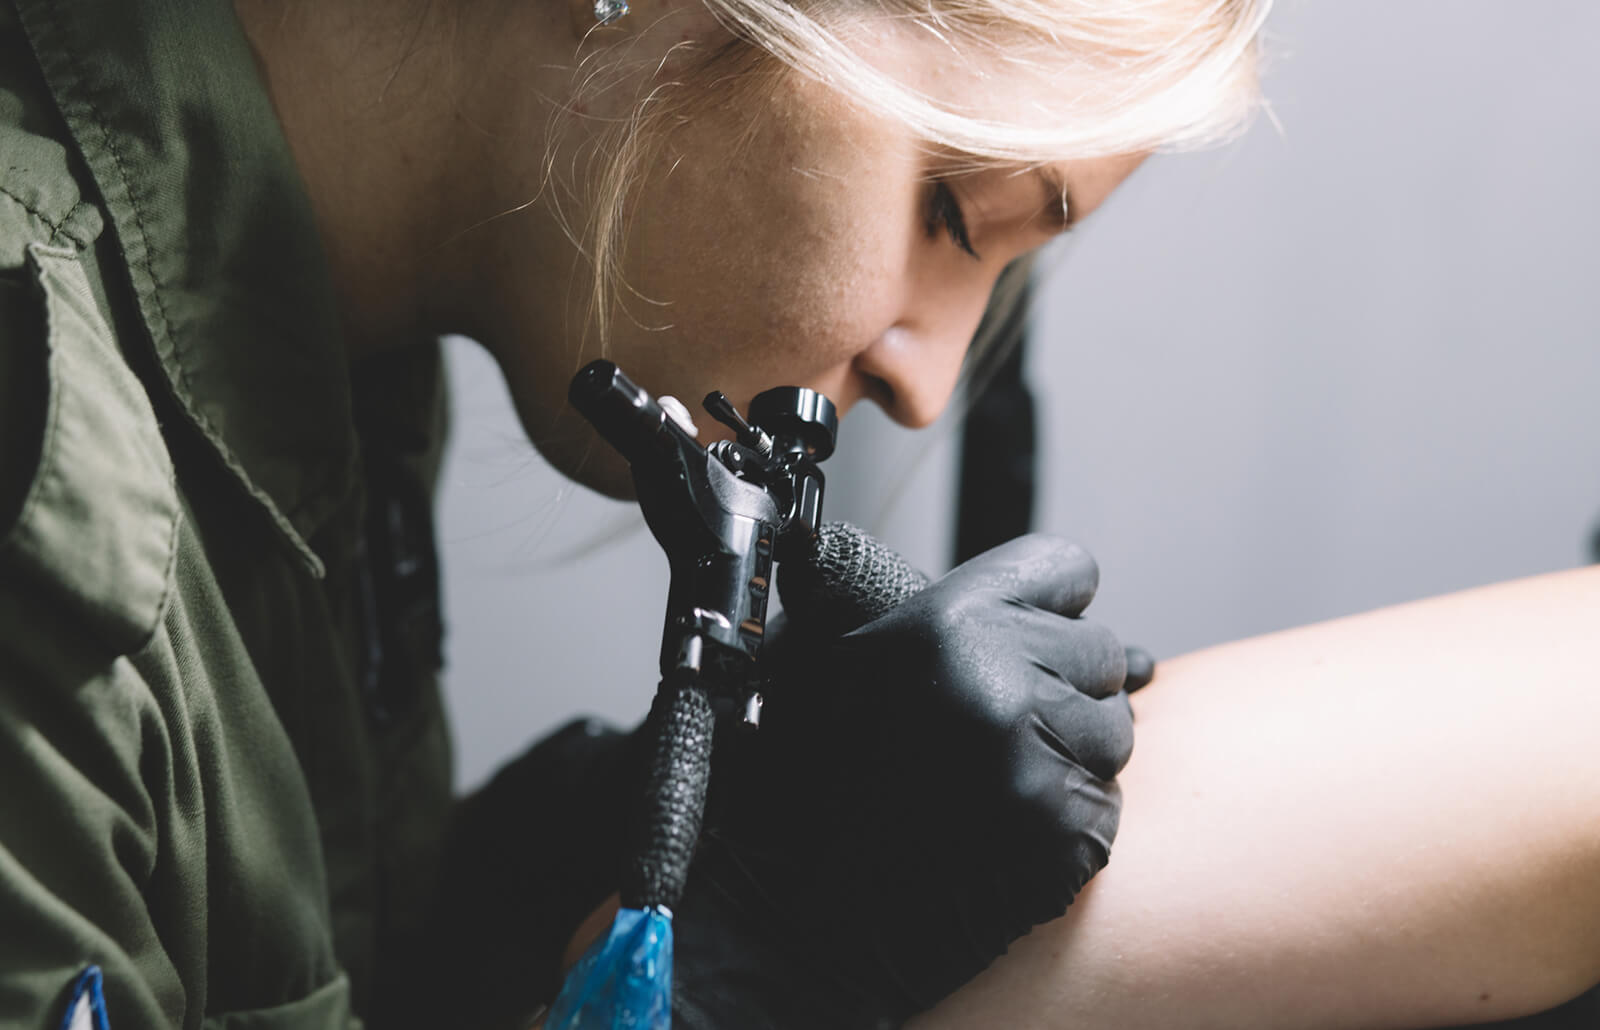 Skin Colored Tattoos to Cover Scars | LoveToKnow